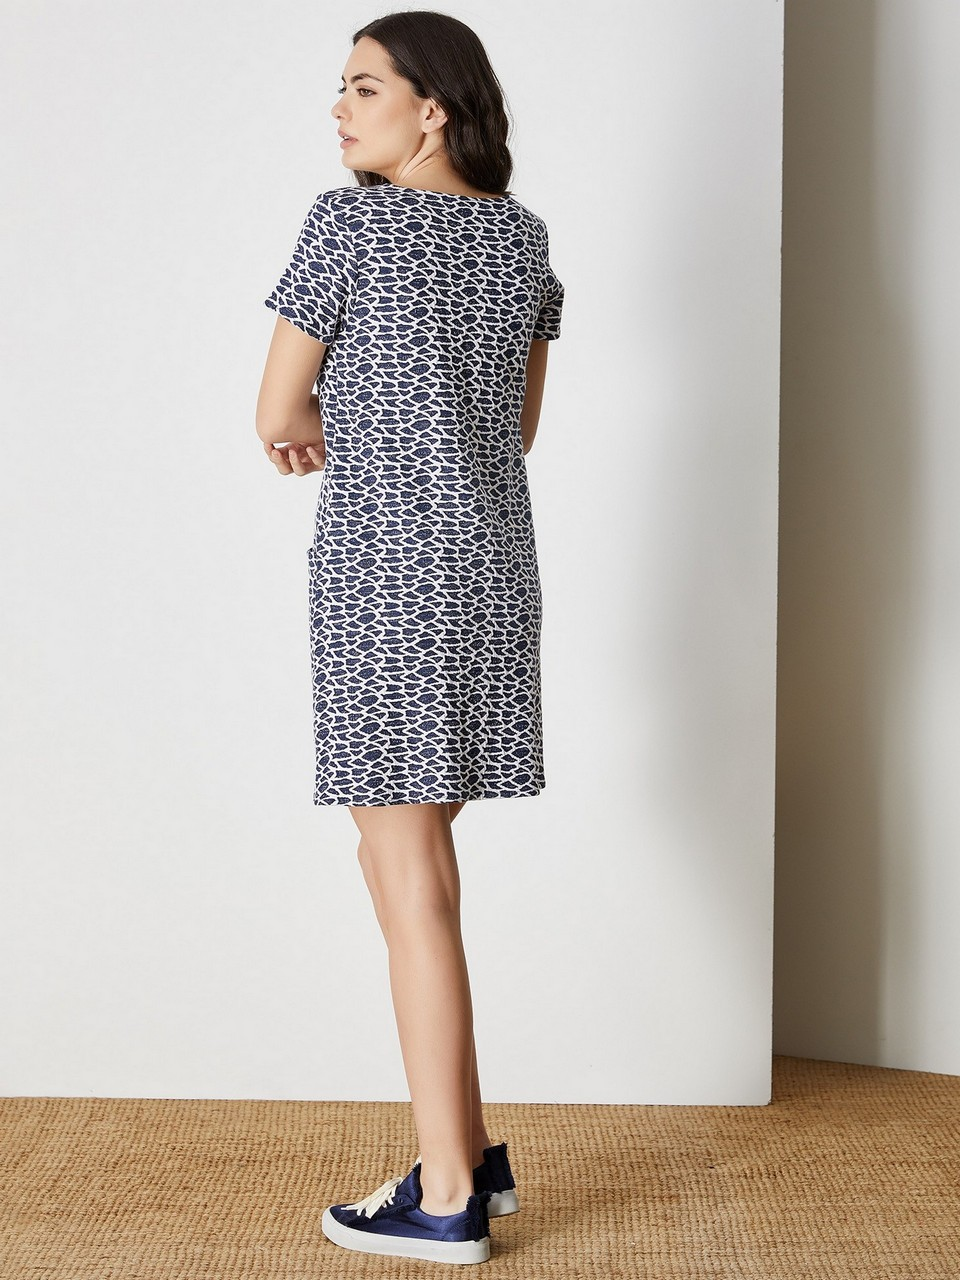 Round Neck Loose Cut Dress